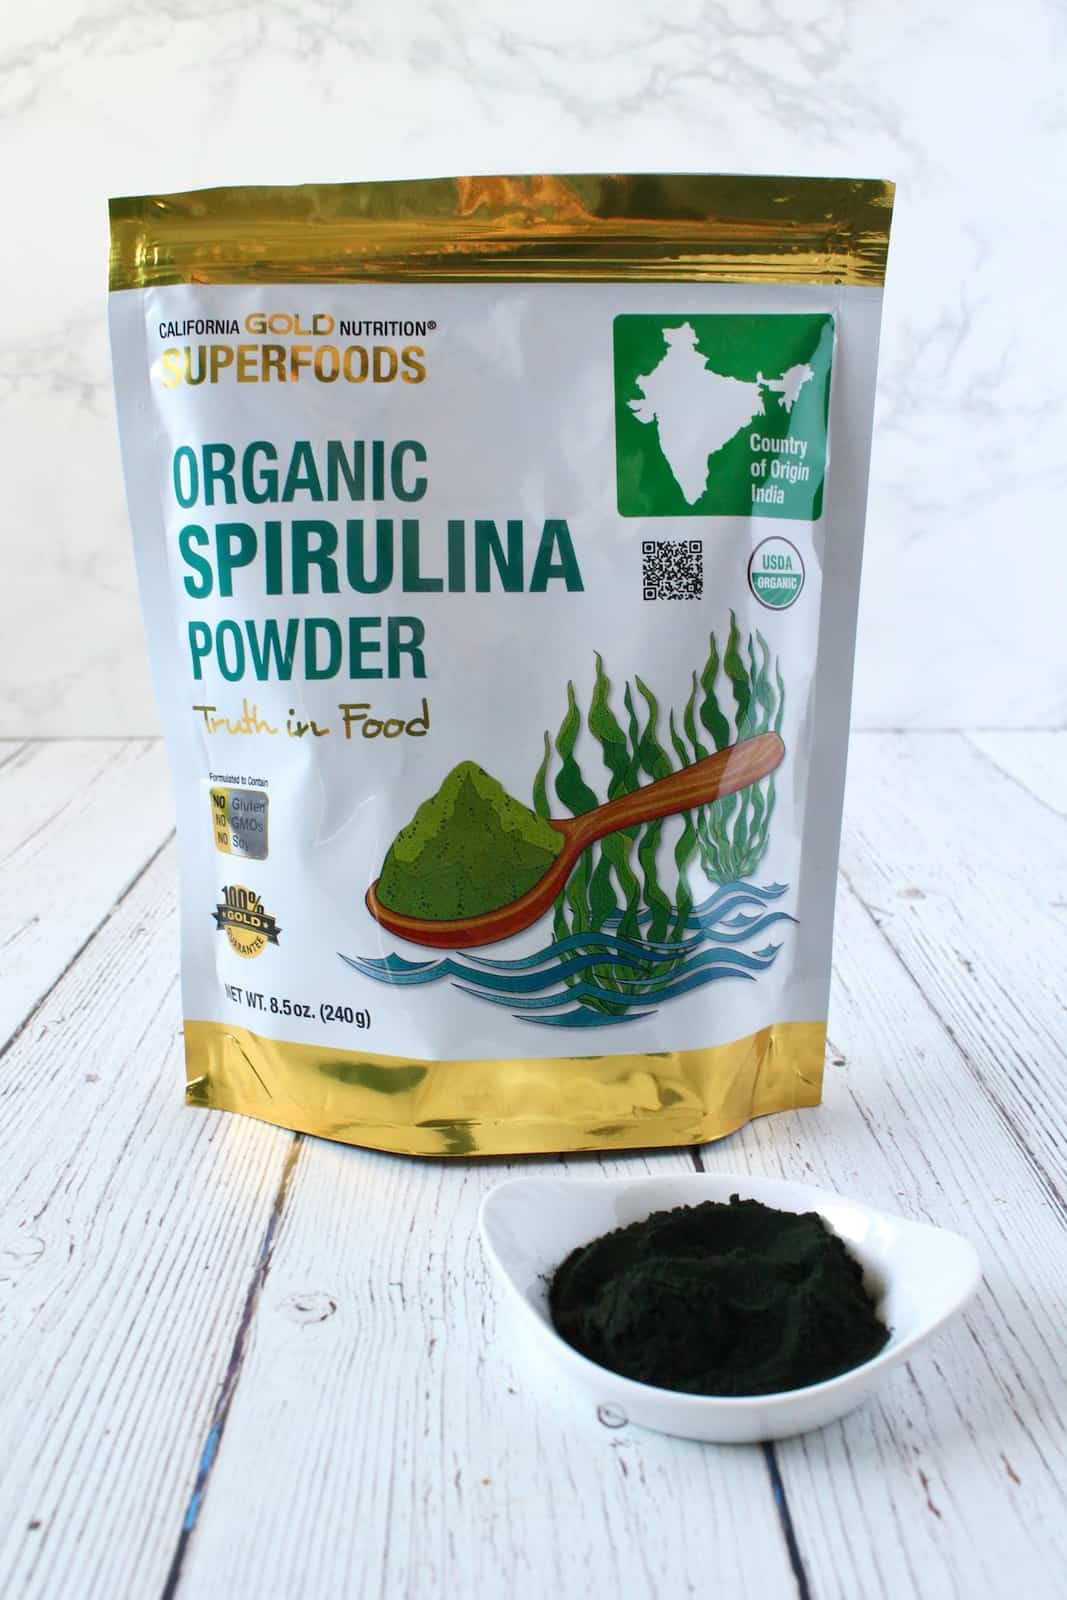 White and gold bag of organic spirulina powder next to a small white dish with dark green powder in it on a white wooden surface with a white marble background